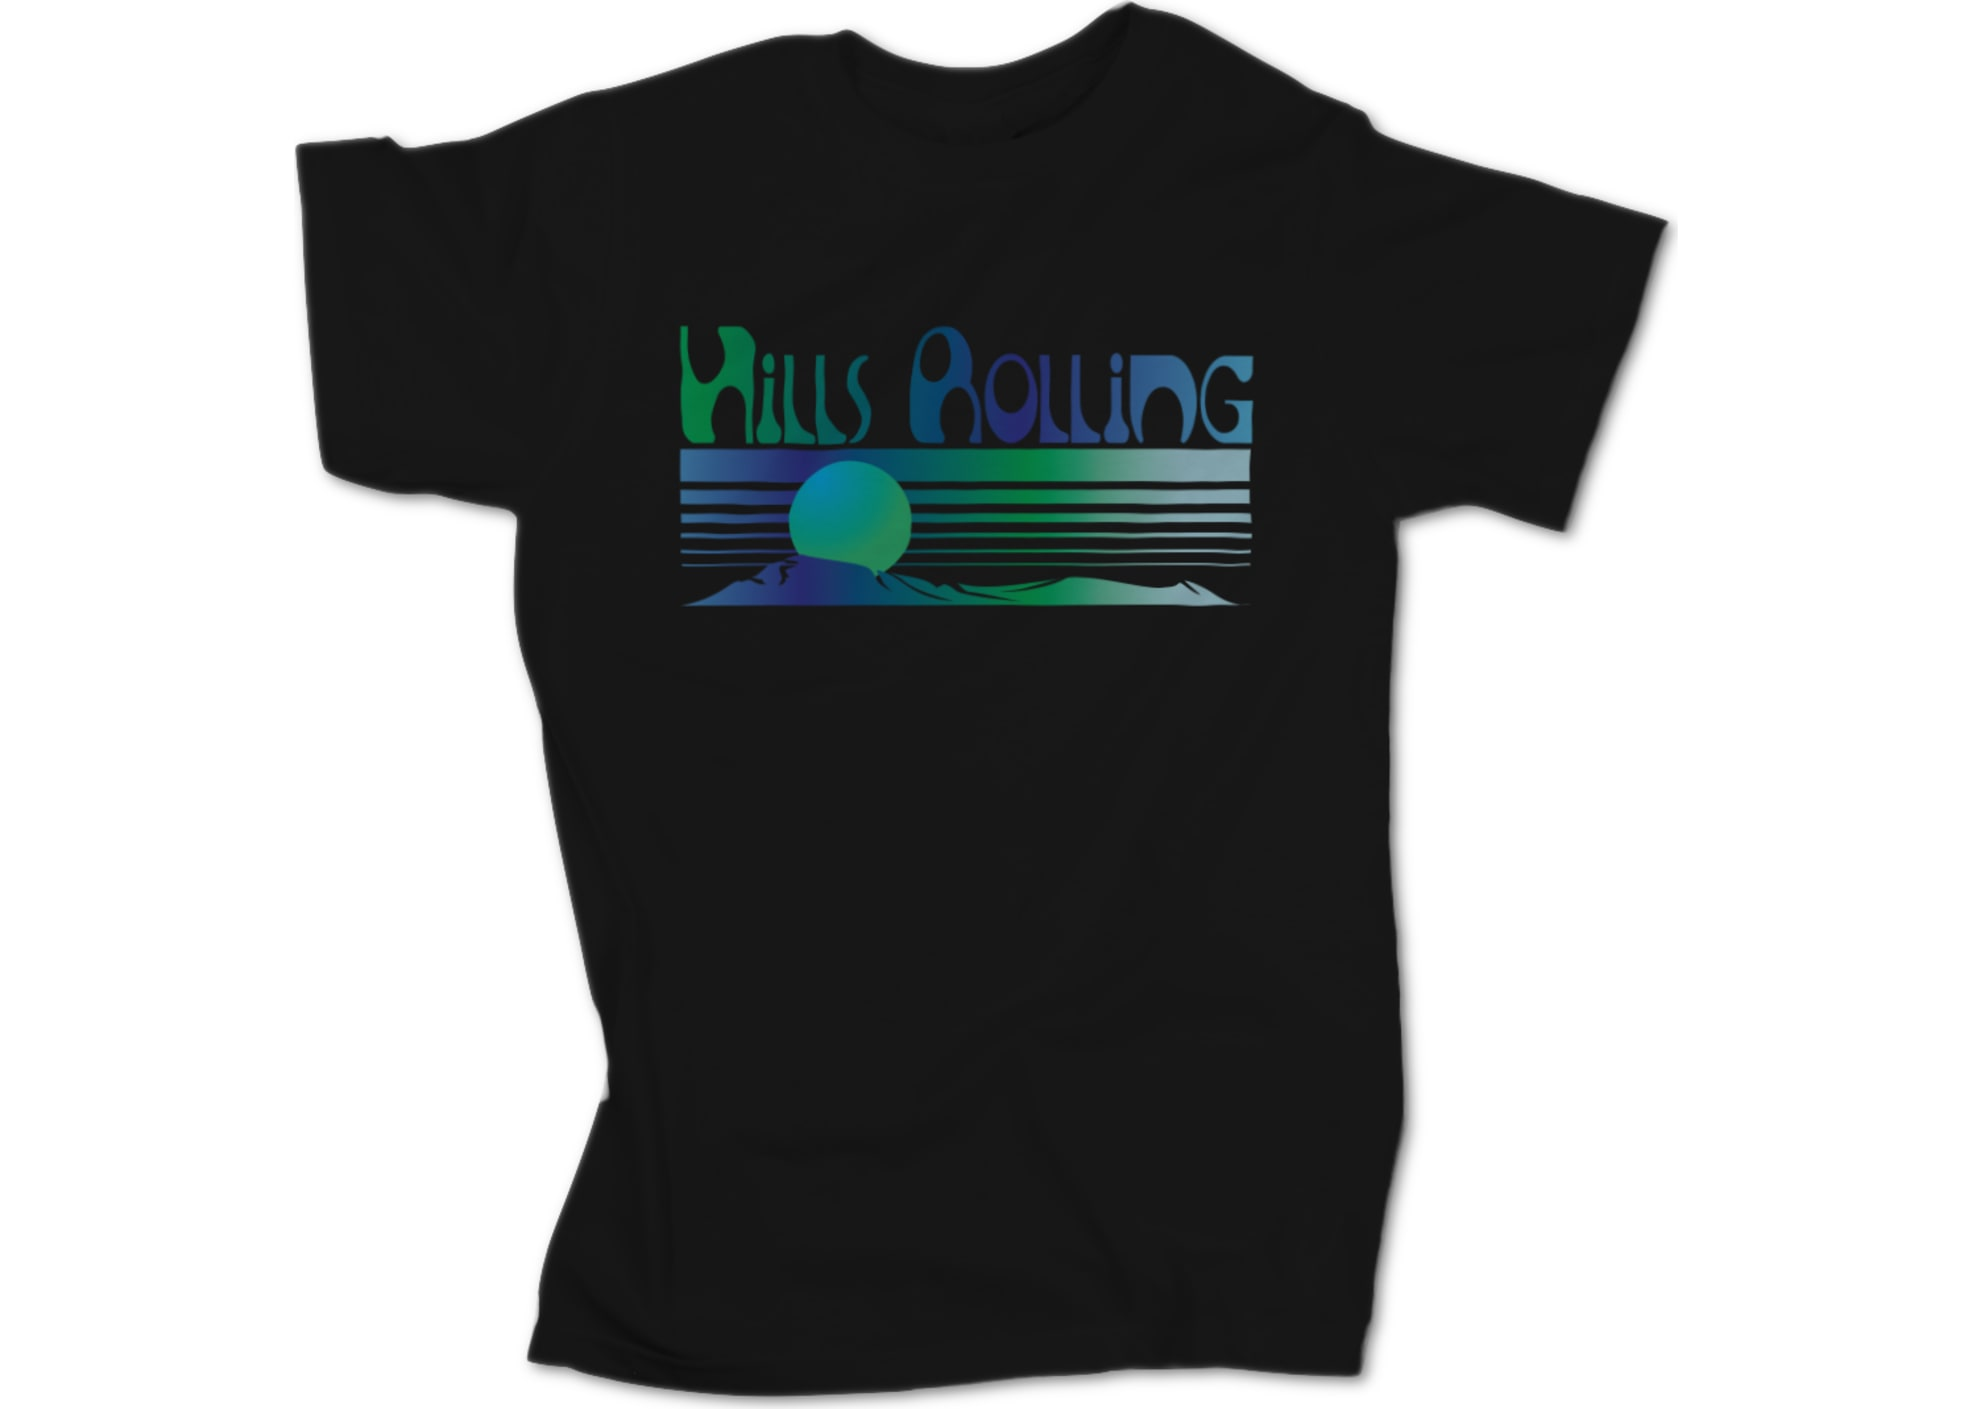 Hills rolling sunset design by trey mcgriff 1474475559